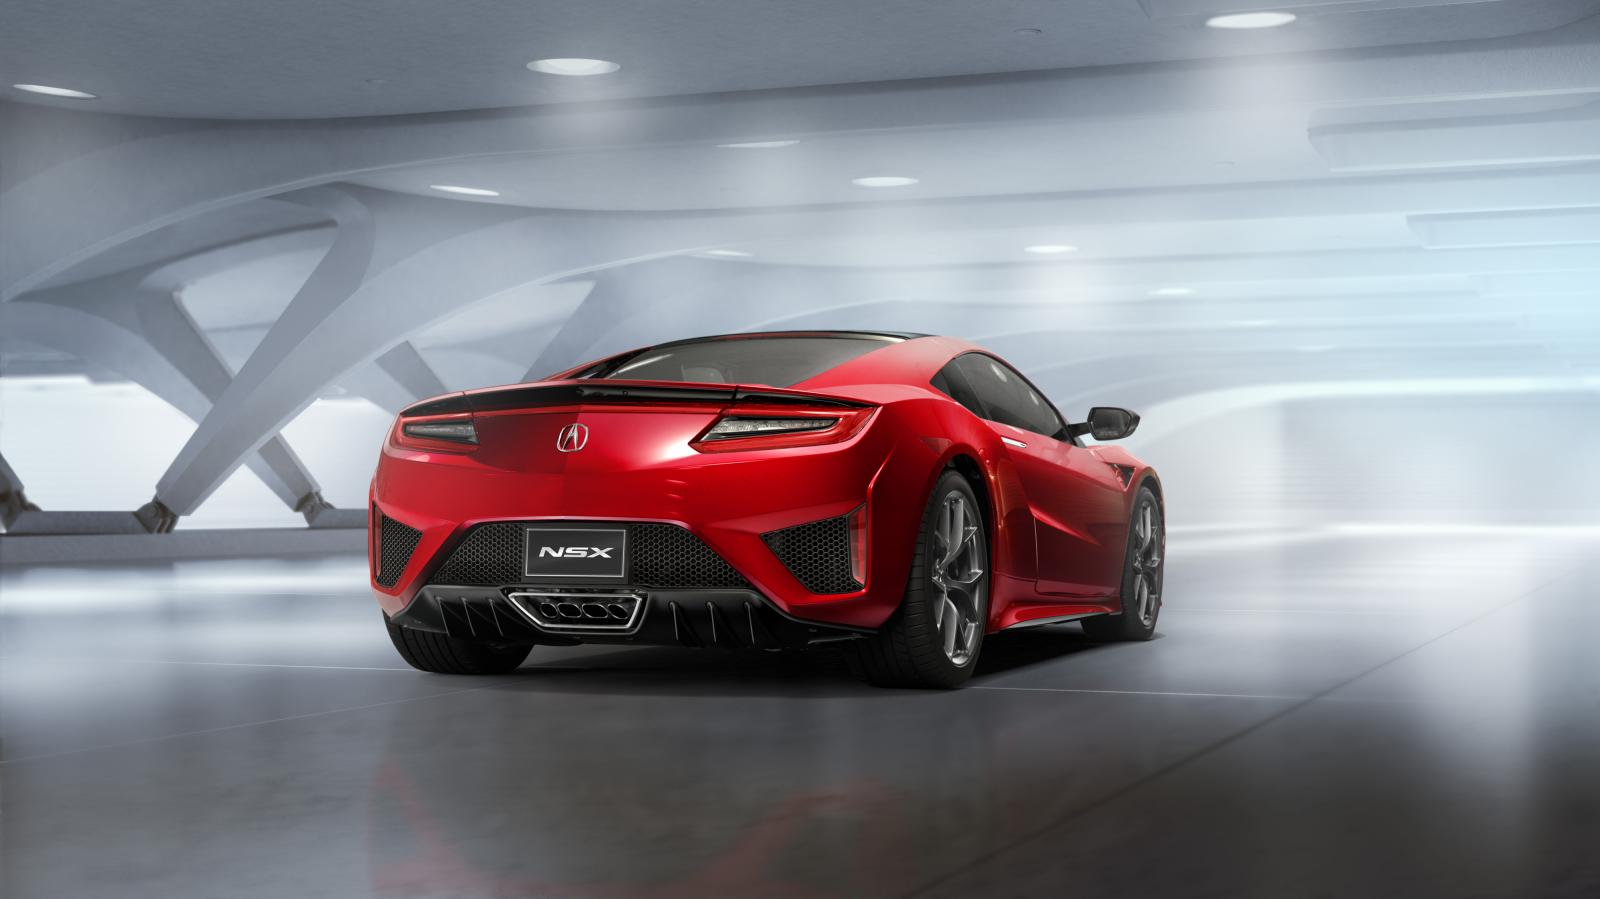 Acura Nsx Production Model Rear Quarter